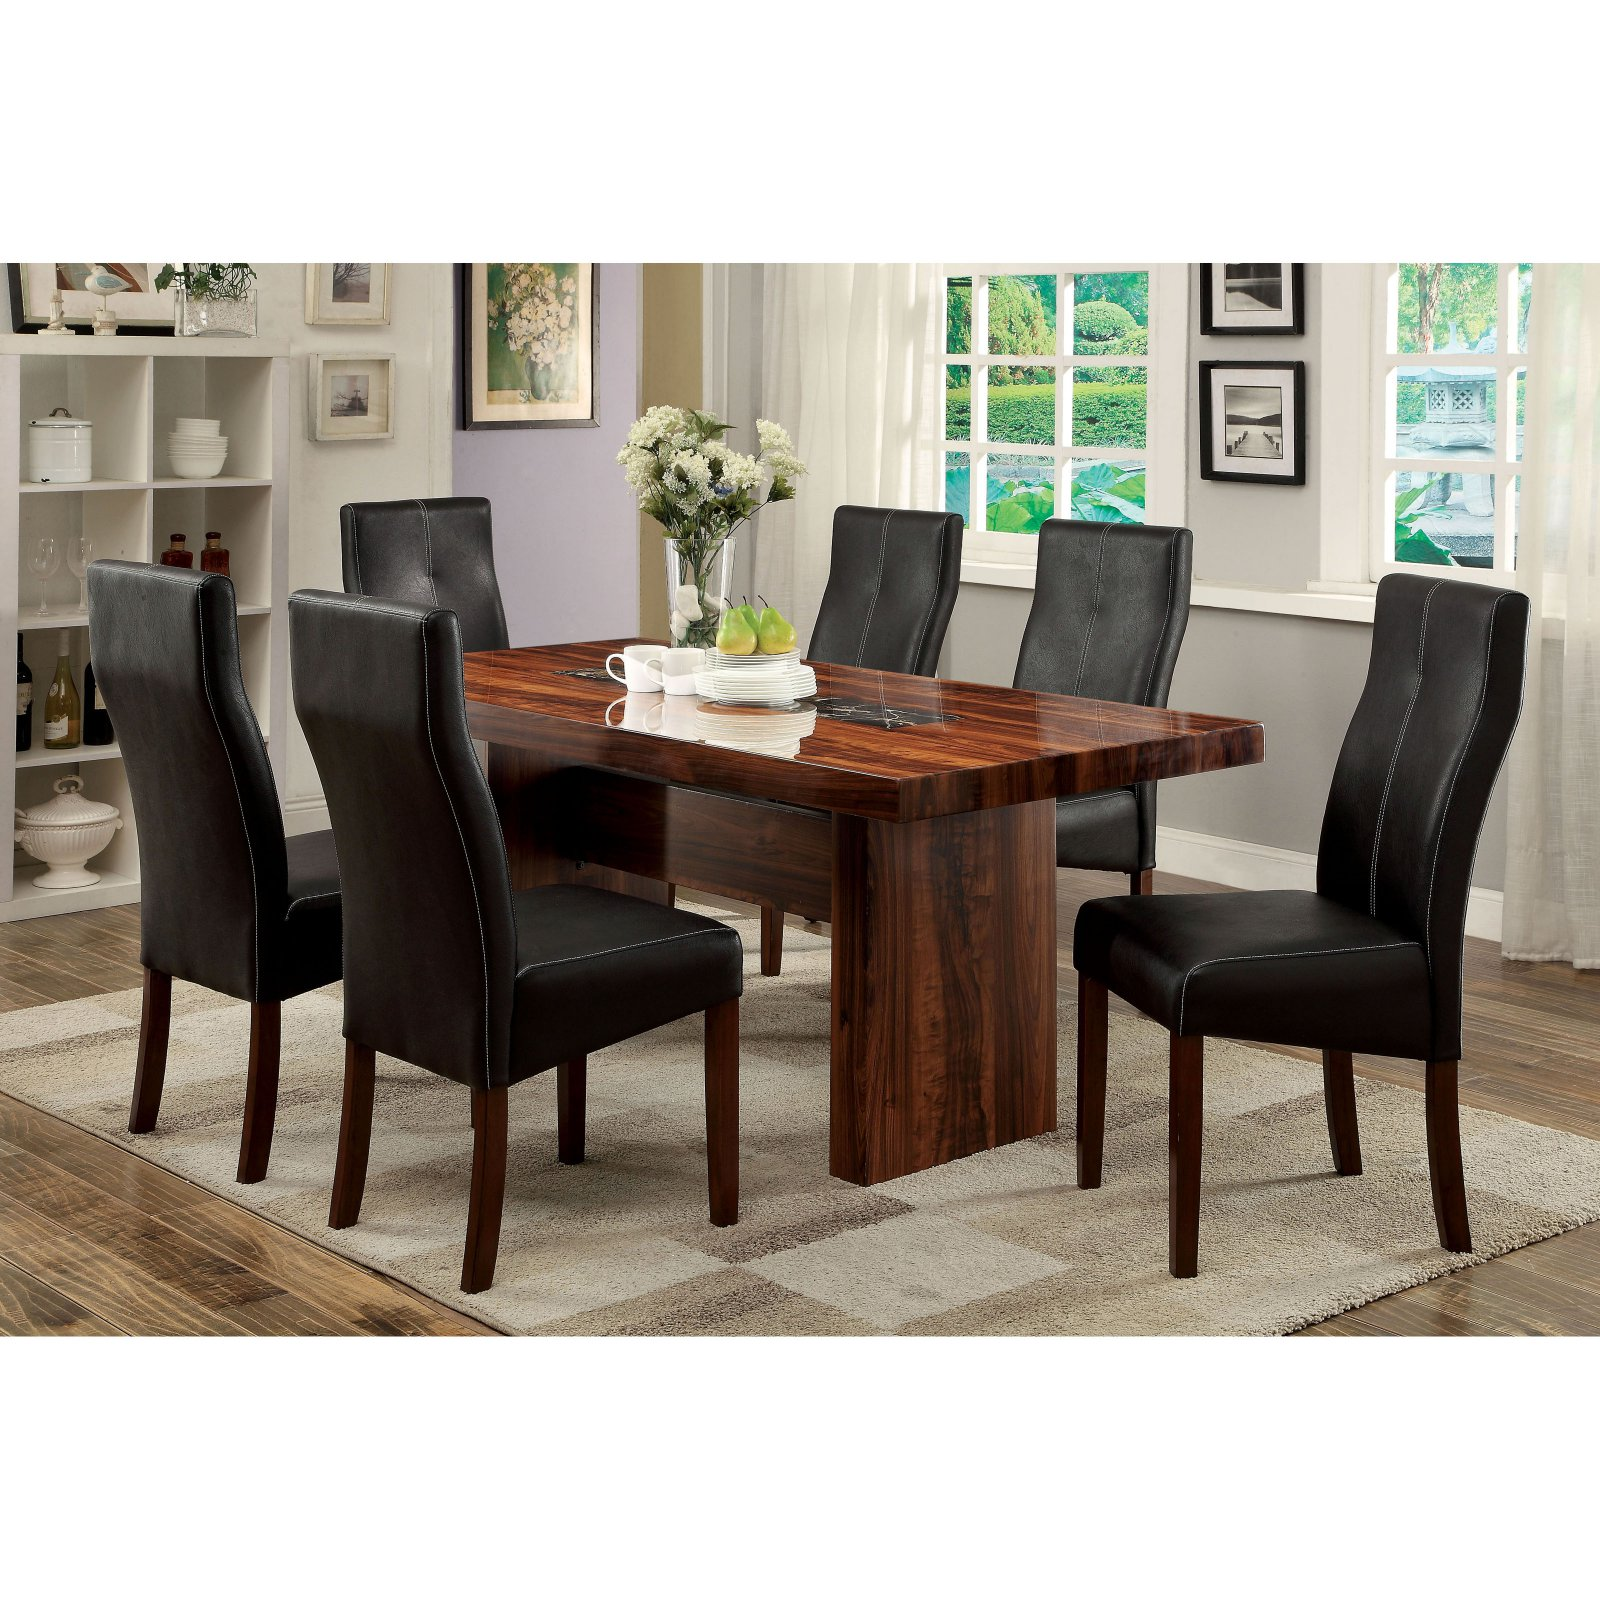 Furniture of America Marcson 7 Piece Dining Table Set